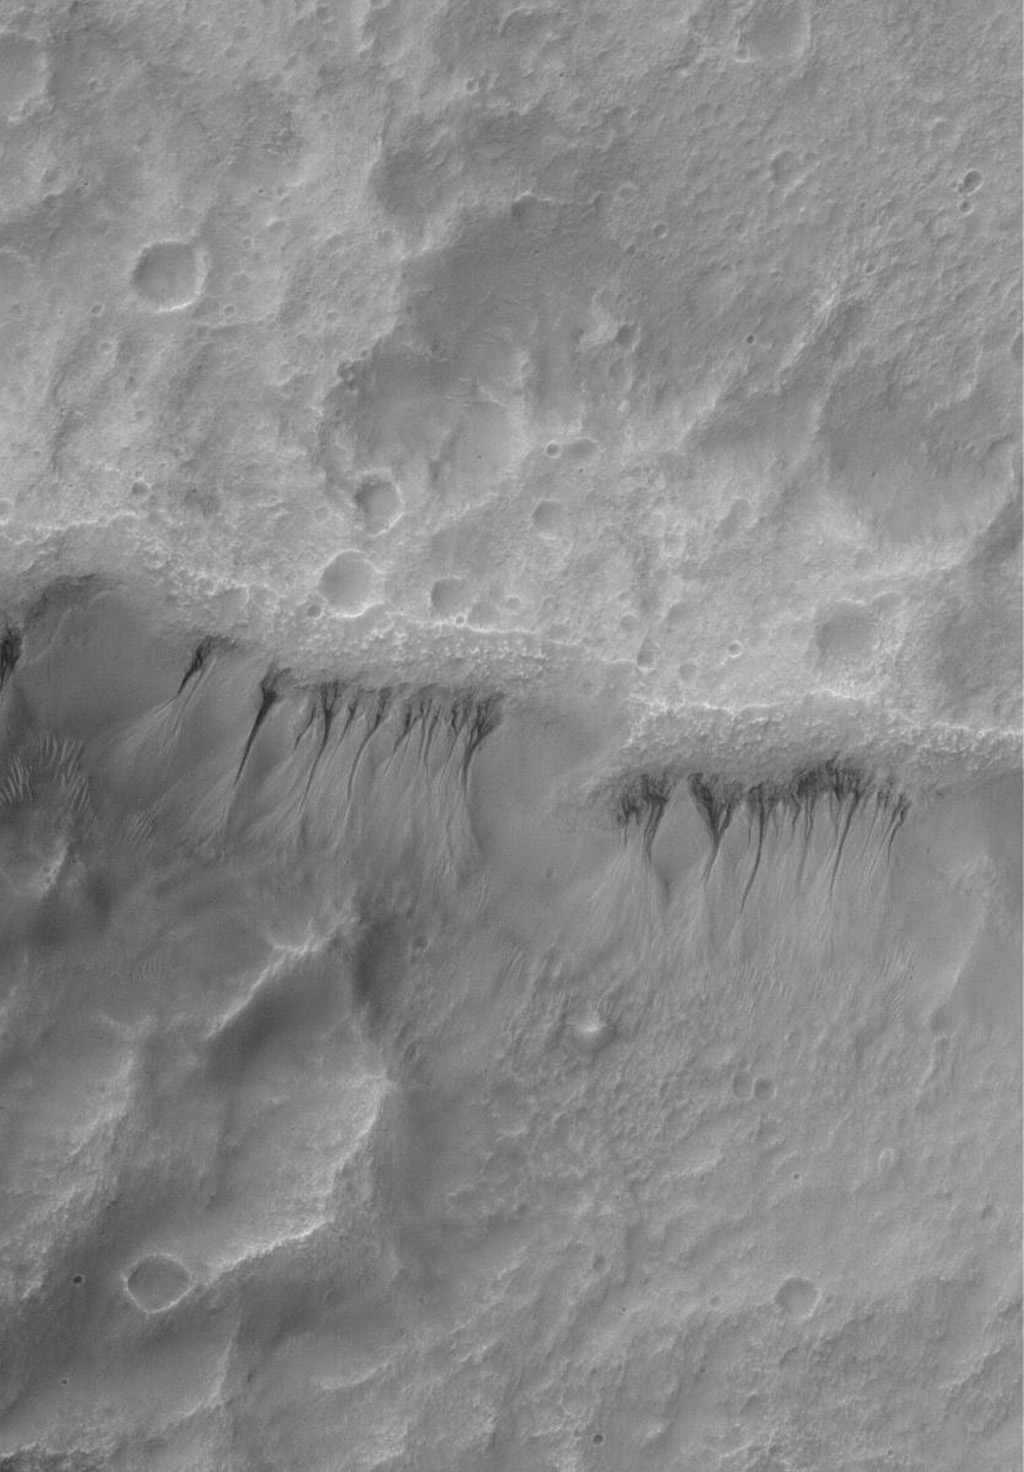 NASA's Mars Global Surveyor shows a gullied crater wall on Mars. The gullies have formed in a thick, smooth-surfaced mantle that covers the crater wall.